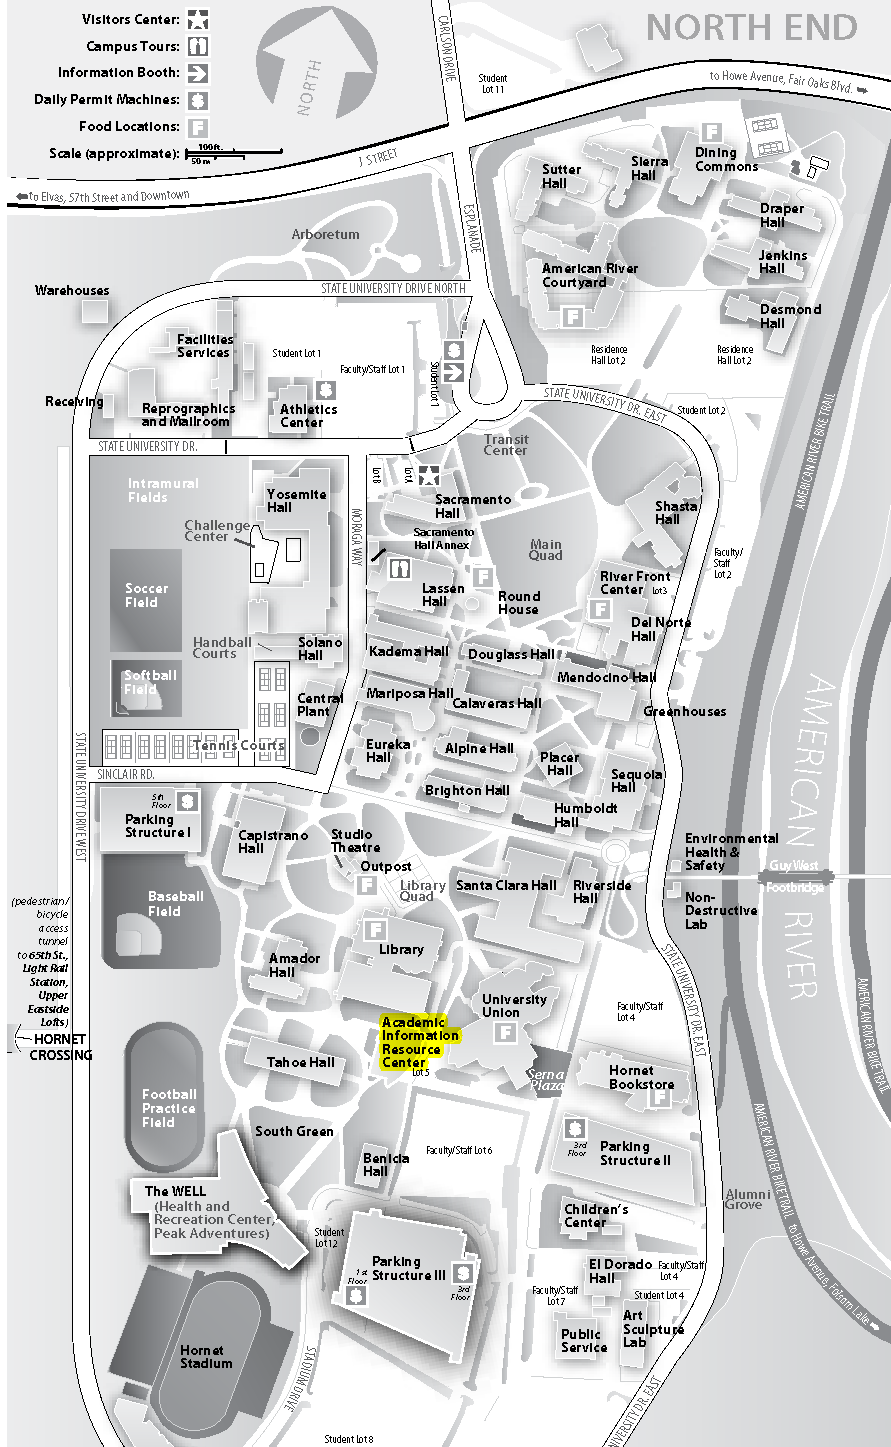 Csus Campus Map App Related Keywords & Suggestions - Csus ... on sacramento state alumni, csu campus map, sac state parking map, sacramento state athletics, sacramento state parking, csu sacramento map, iu northwest campus map, idaho campus map, pacific campus map, north dakota campus map, long beach csulb campus map, southeastern louisiana campus map, eastern washington campus map, california state university chico map, sac campus map, cal poly san luis obispo campus map, sacramento state university calendar, sacramento state facilities, sacramento state housing, sacred heart campus map,